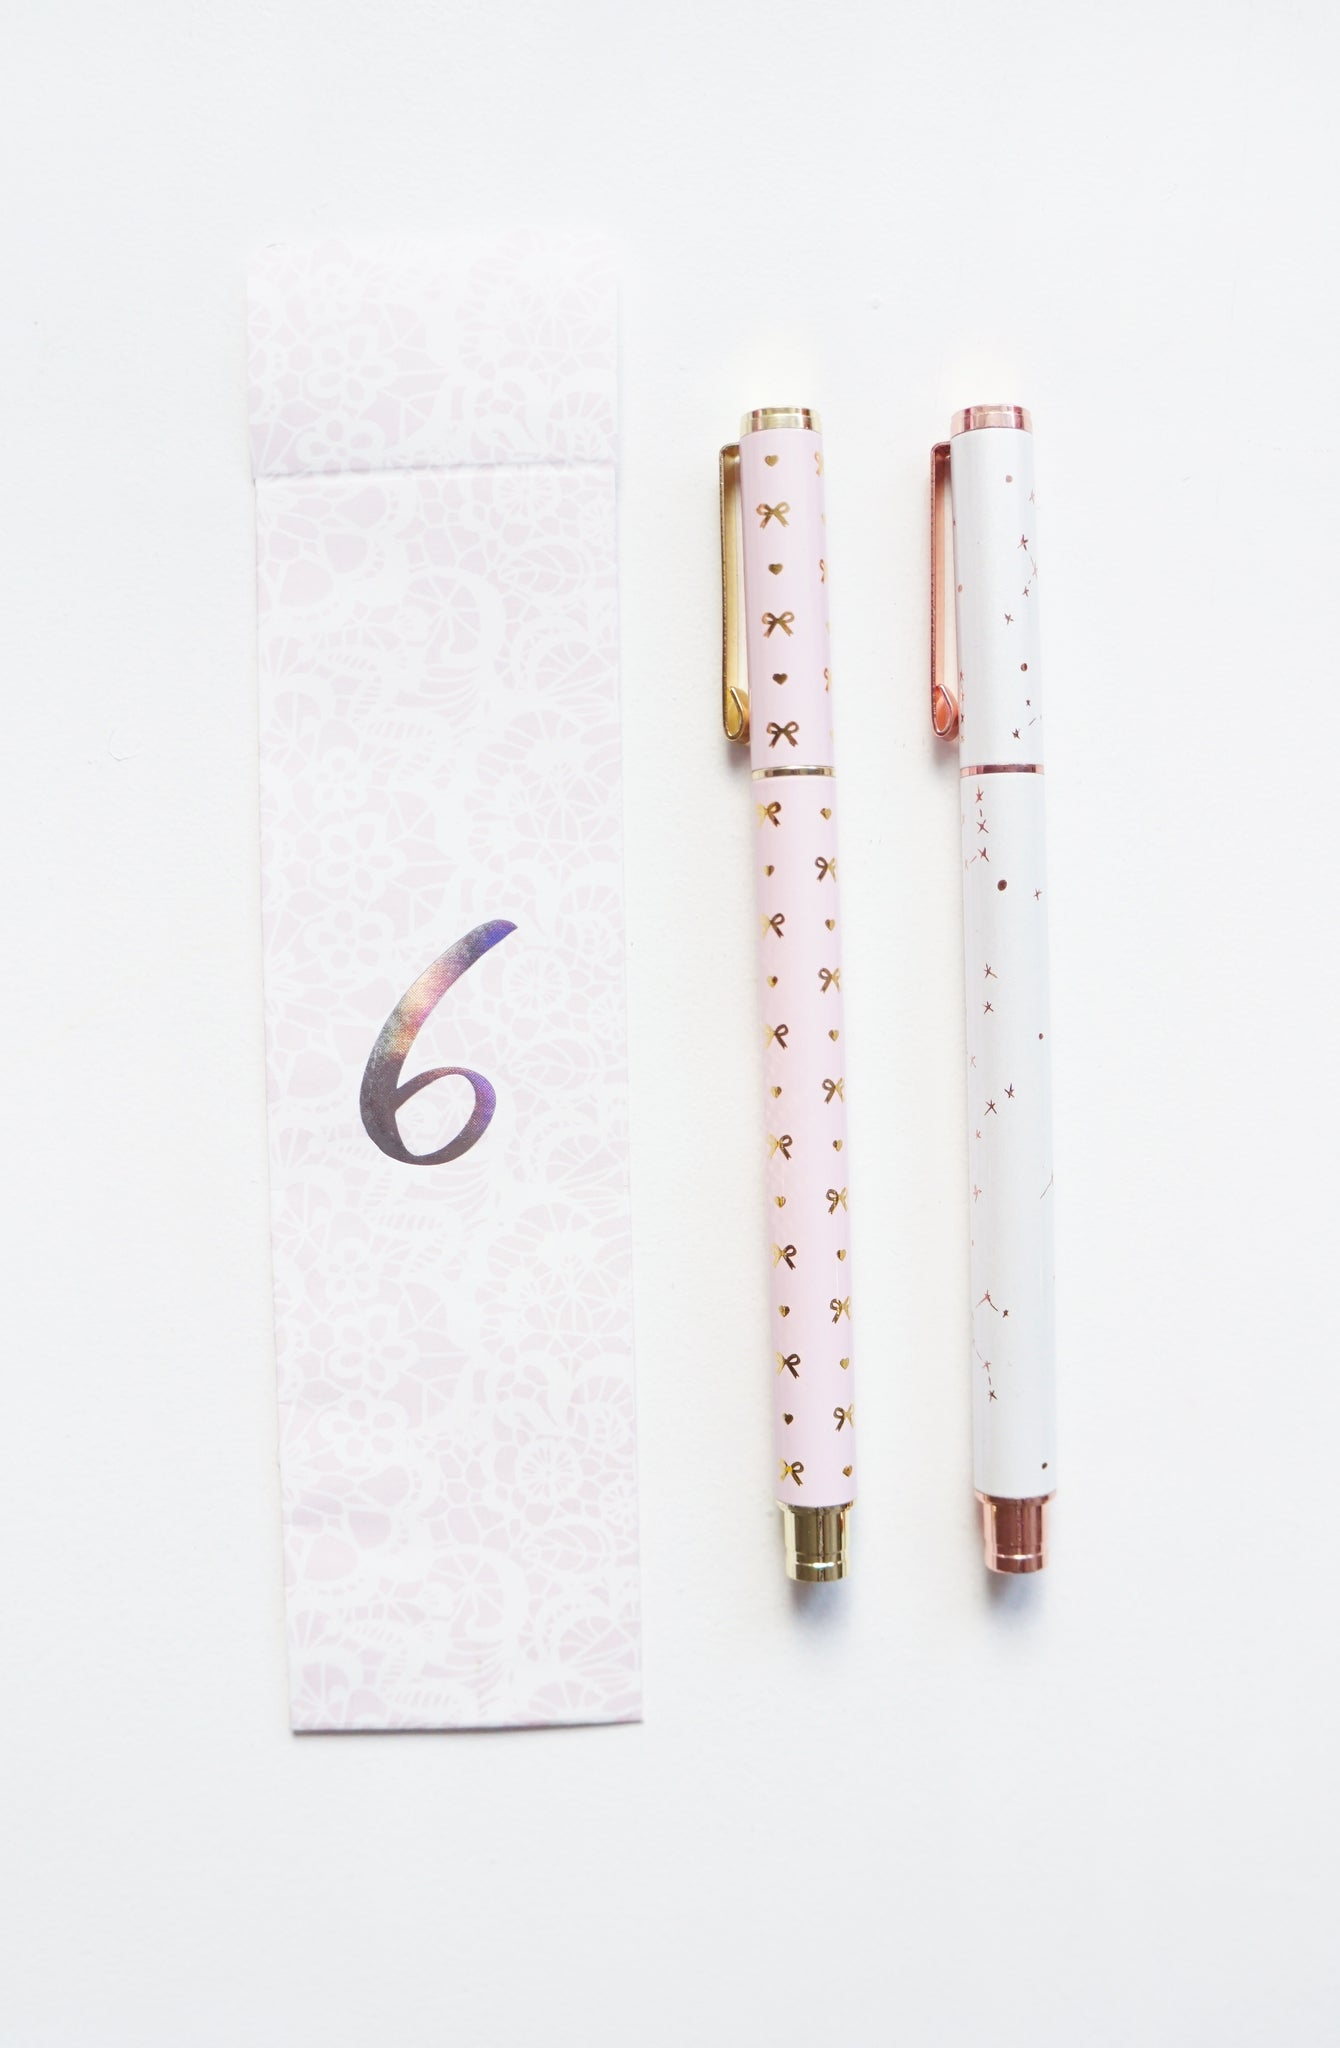 GEL INK PEN set of 2 - PINK BOW & HEARTS / WHITE CONSTELLATIONS gold/rose gold hardware 2019 12 days box/D6 (January 31 Mini Release)